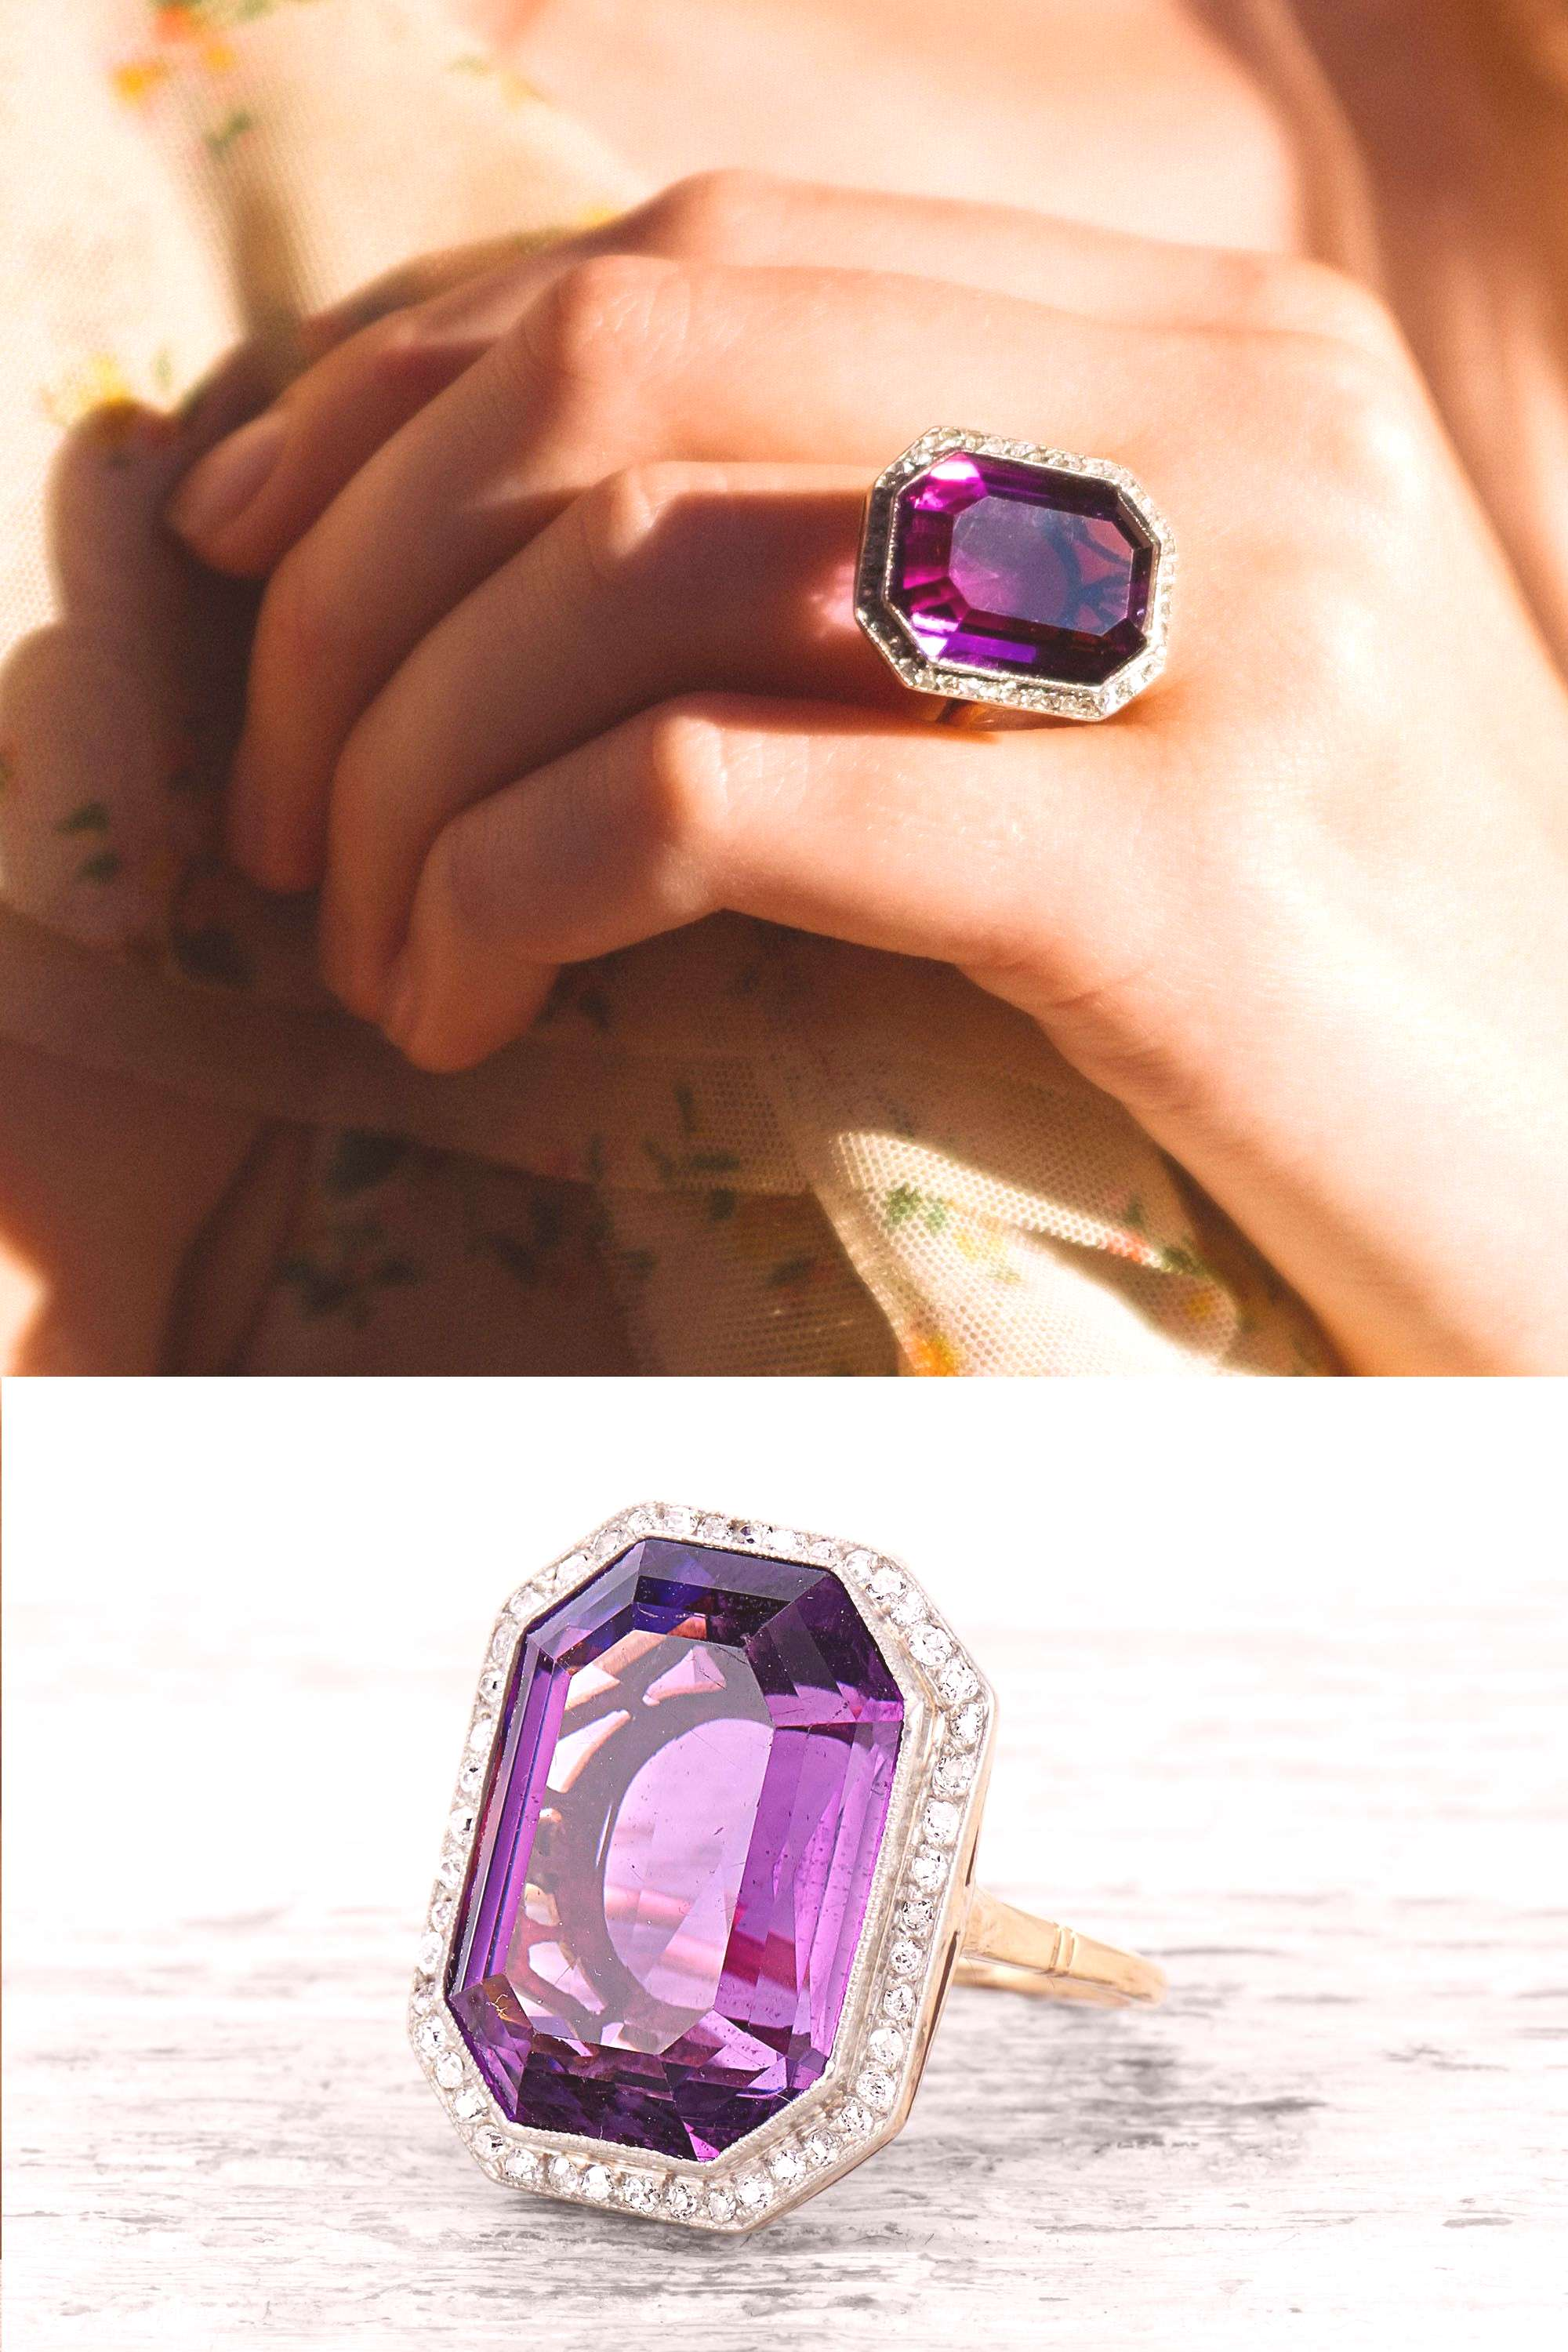 Vintage Amethyst Ring An Edwardian cocktail ring set with a rectangular-cut amethyst measuring 19.0